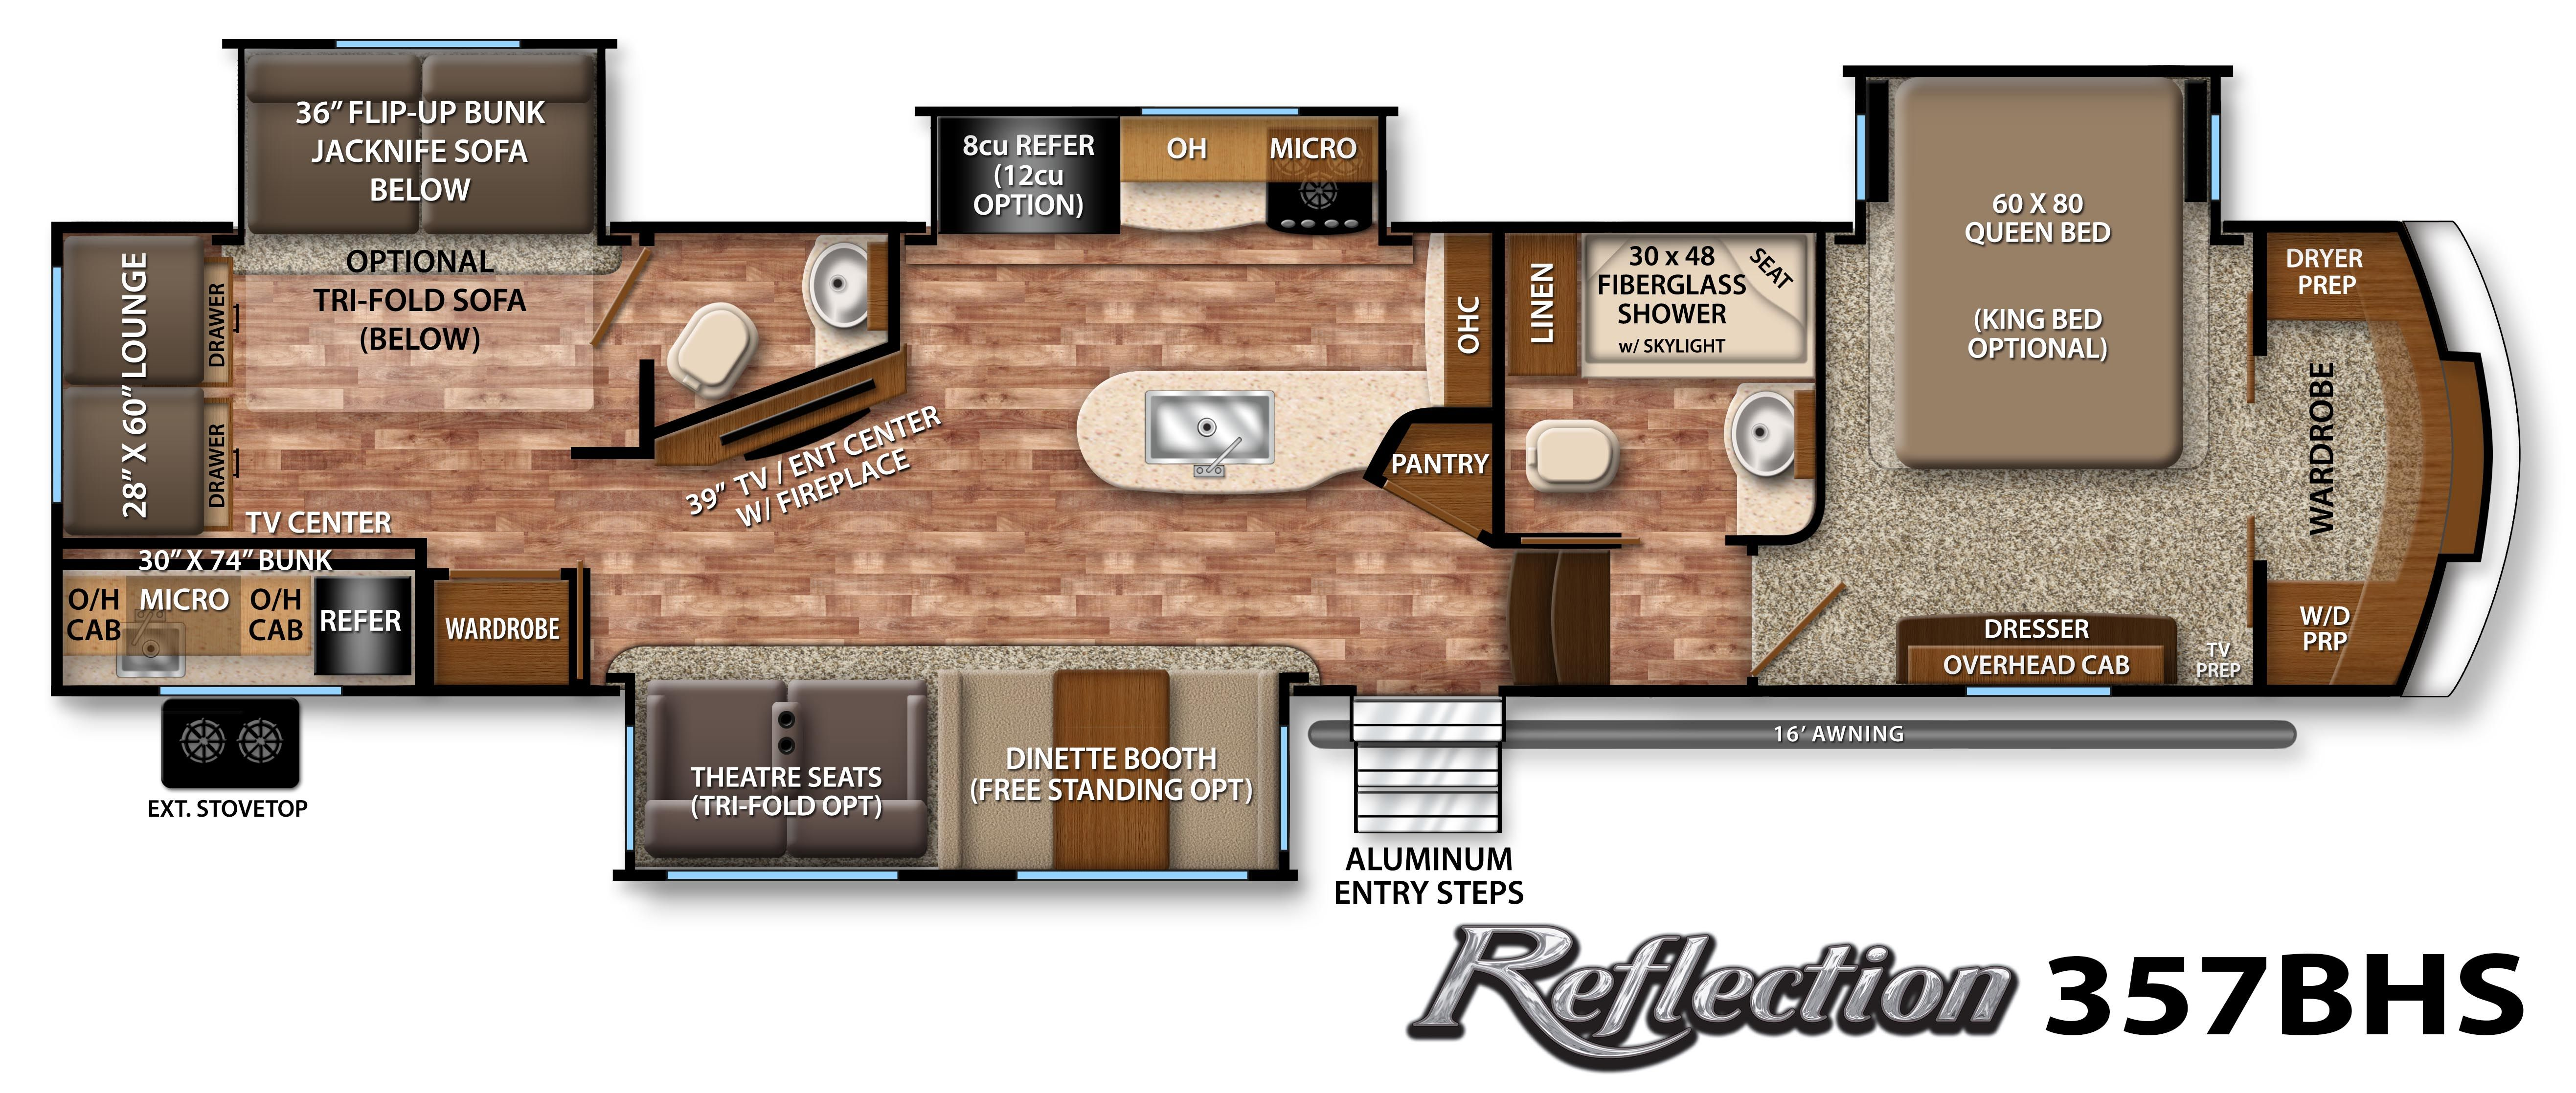 Reflection Fifth Wheel Specifications Grand Design Rv Dream